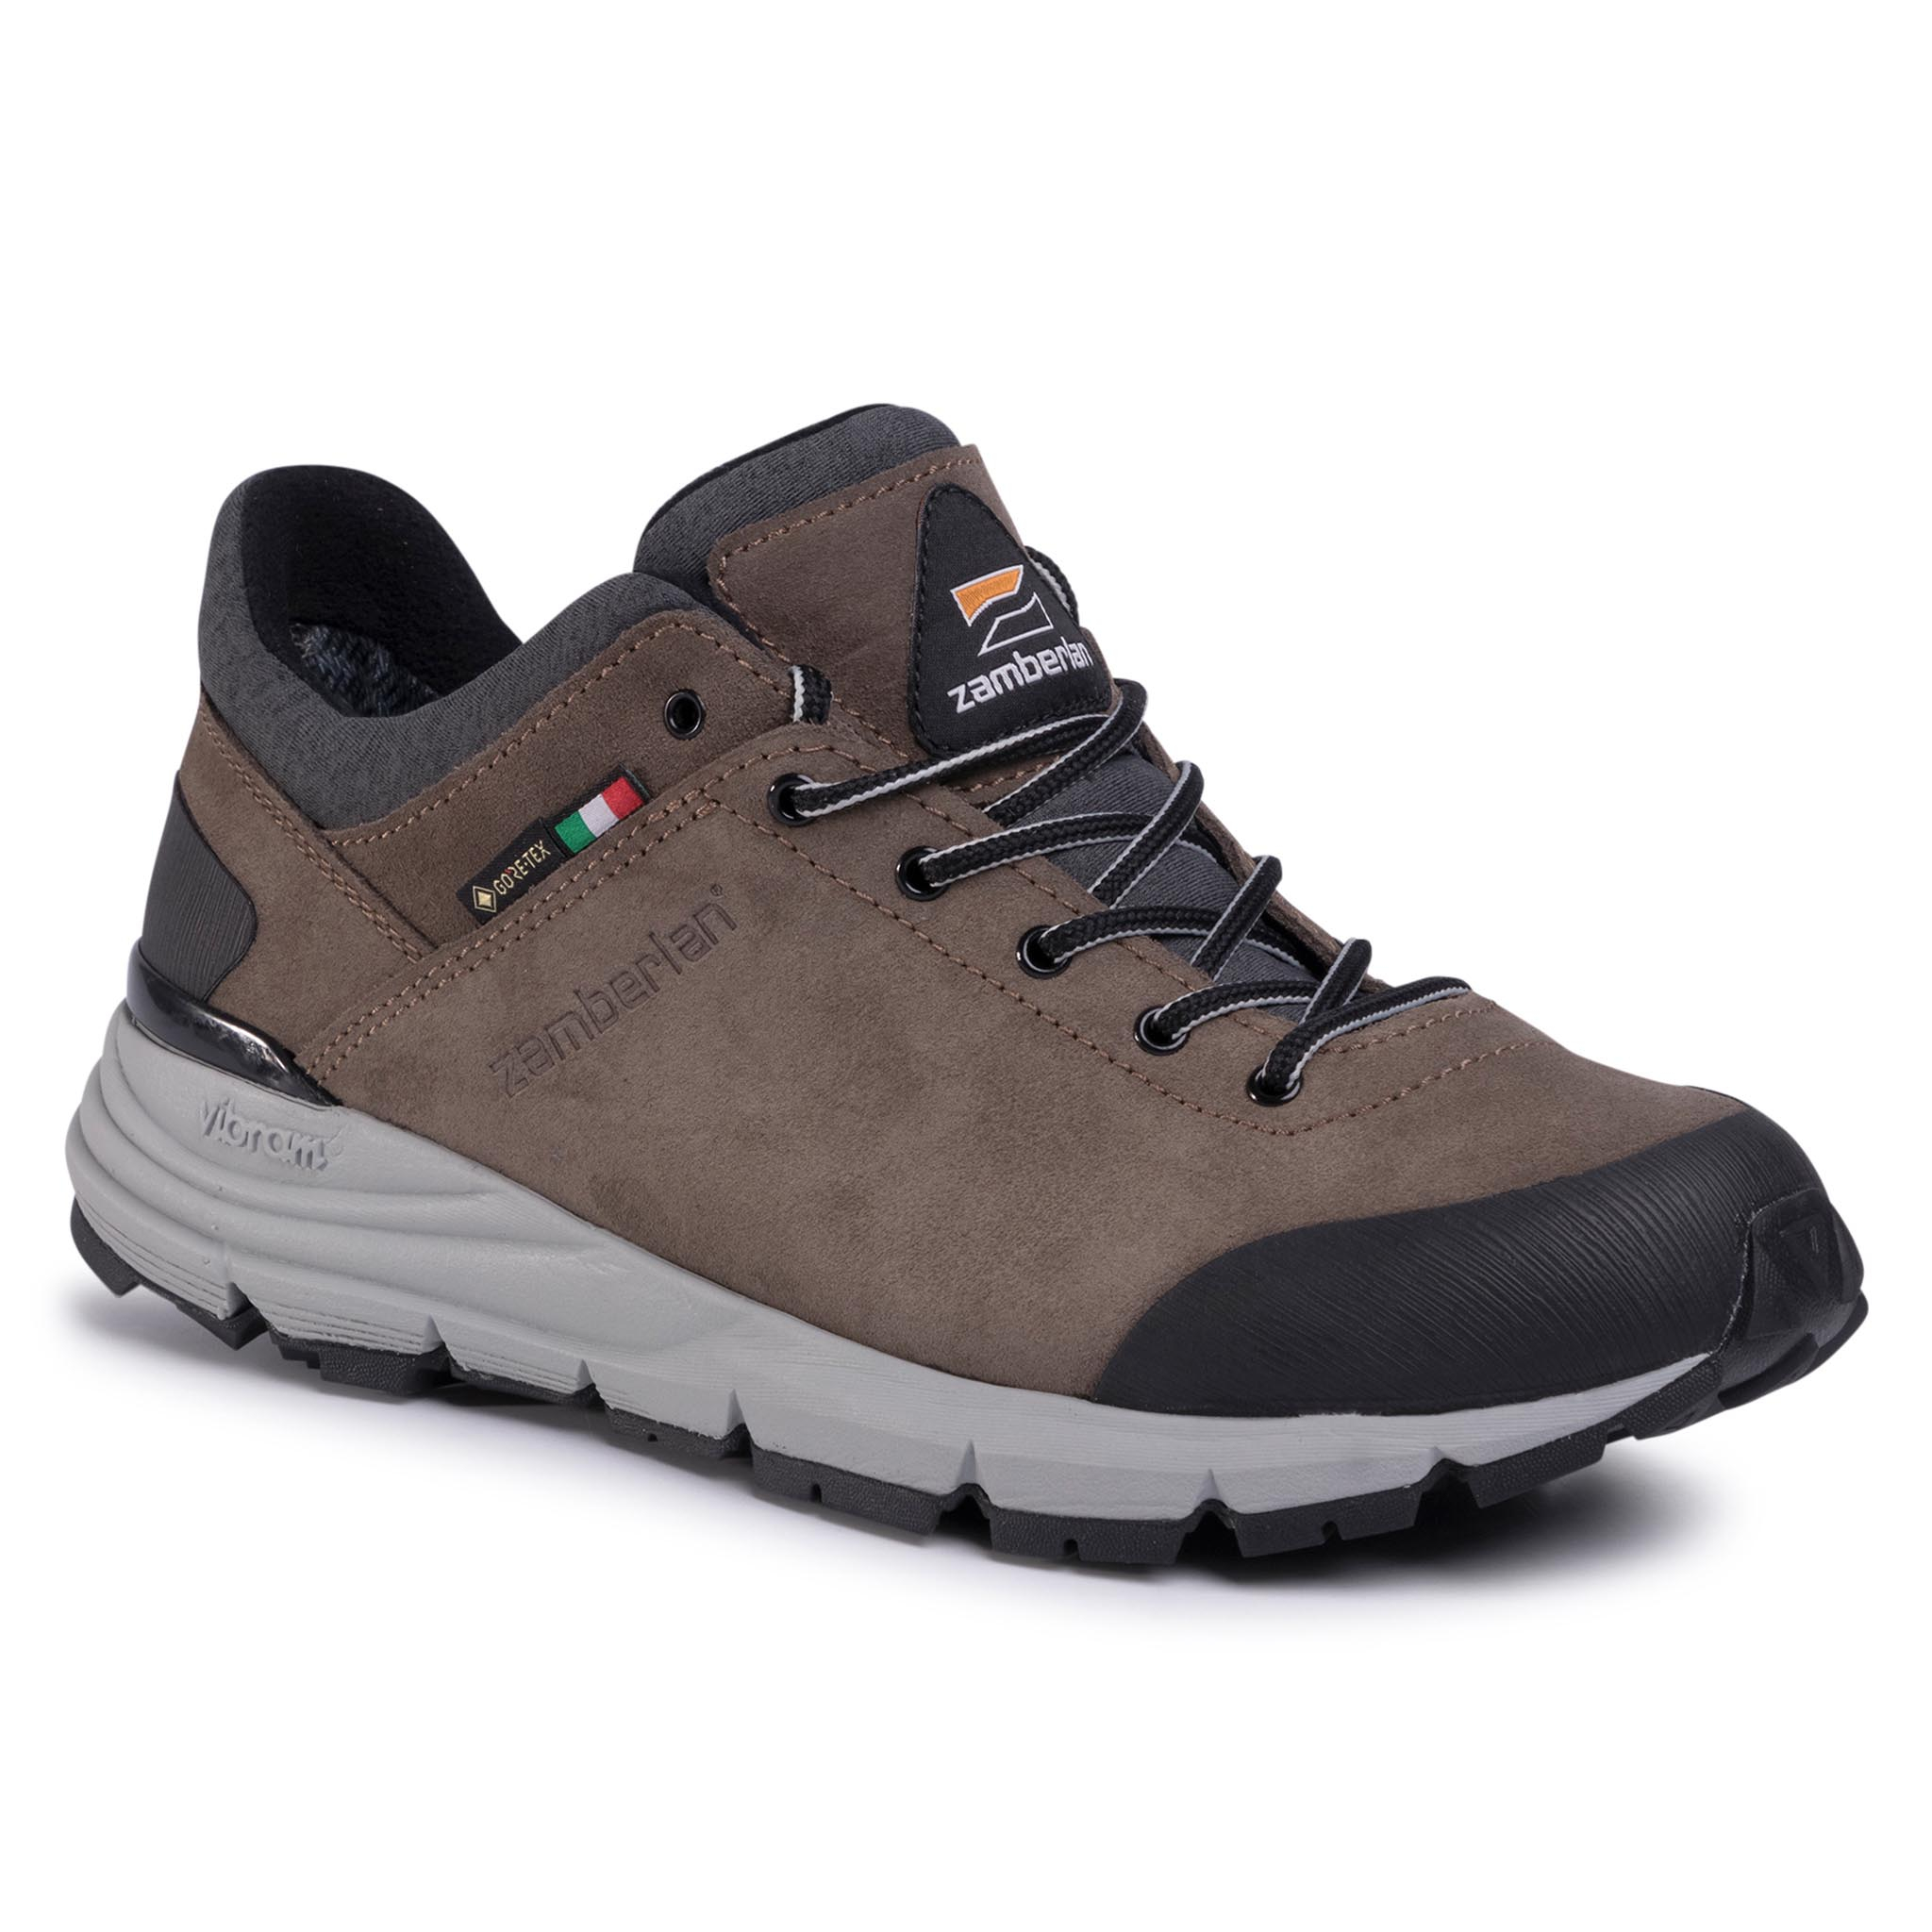 Trekkings Zamberlan - 205 Stroll Gtx Gore-Tex Brown imagine epantofi.ro 2021